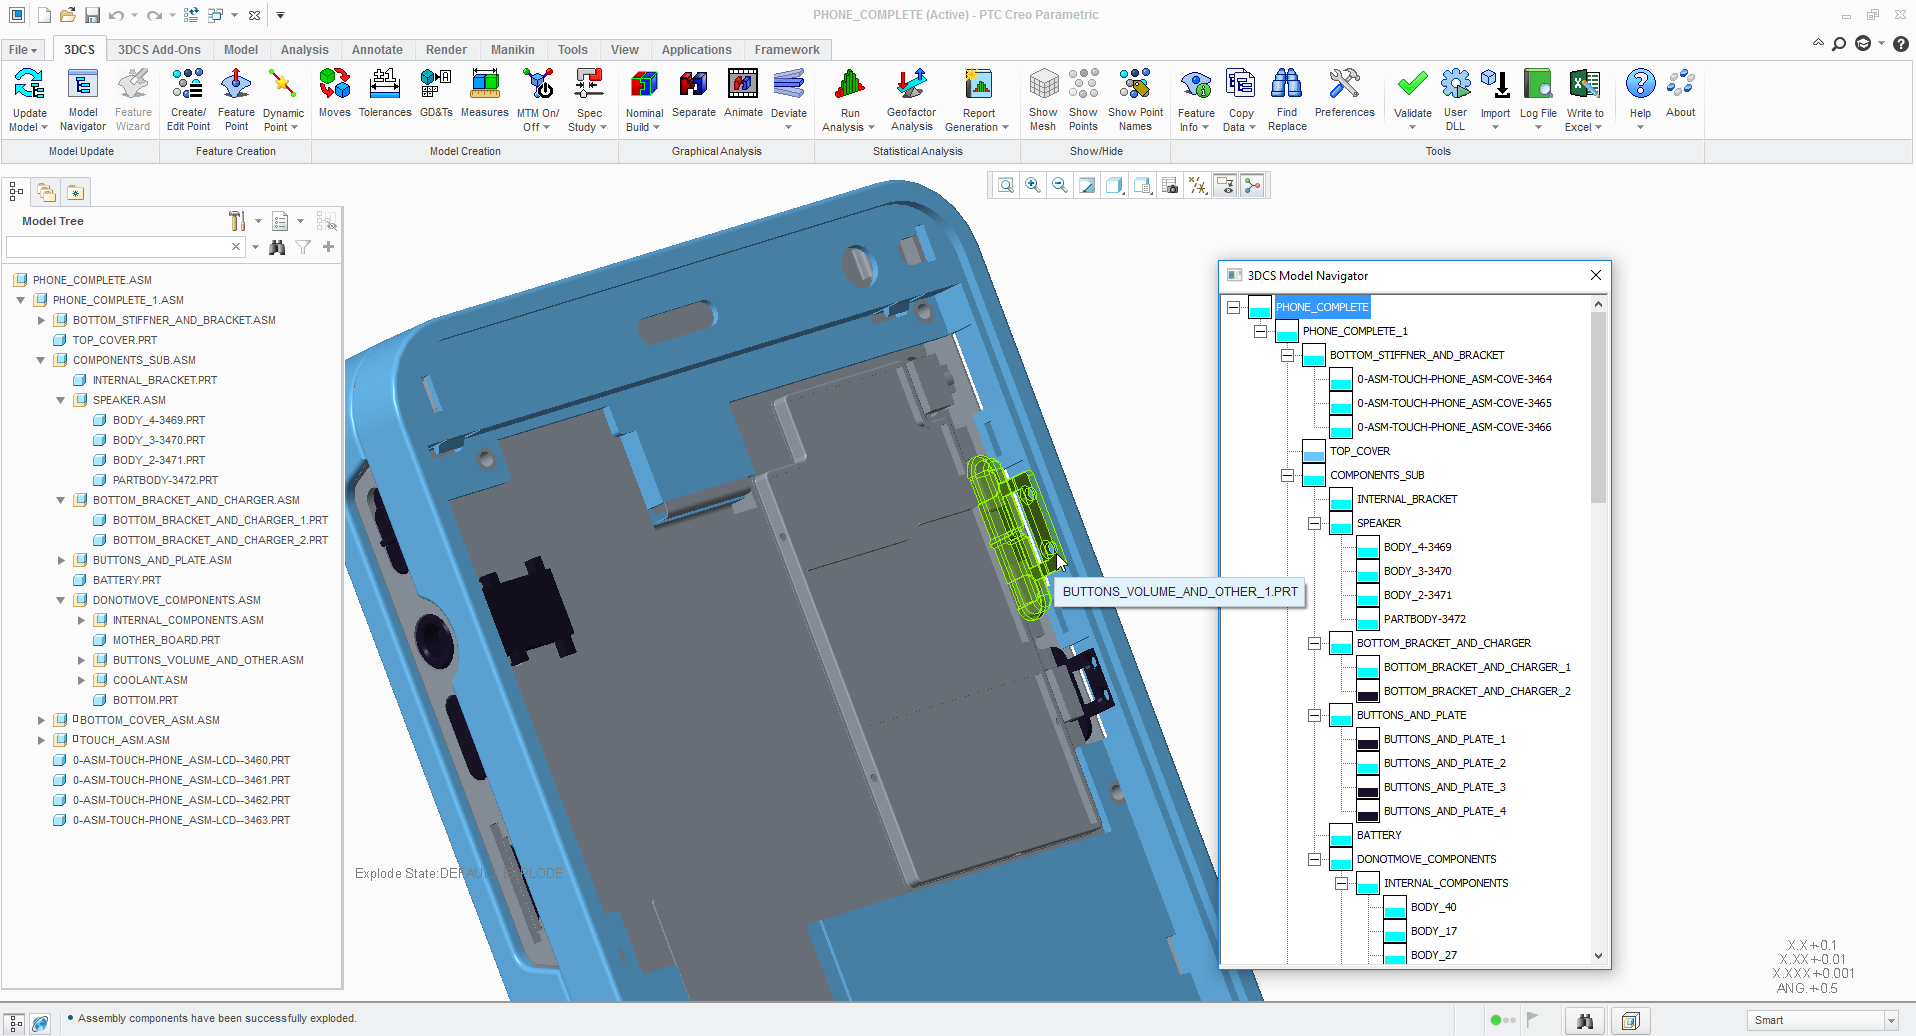 2017-01-06 14_16_40-PHONE_COMPLETE (Active) - PTC Creo Parametric.png